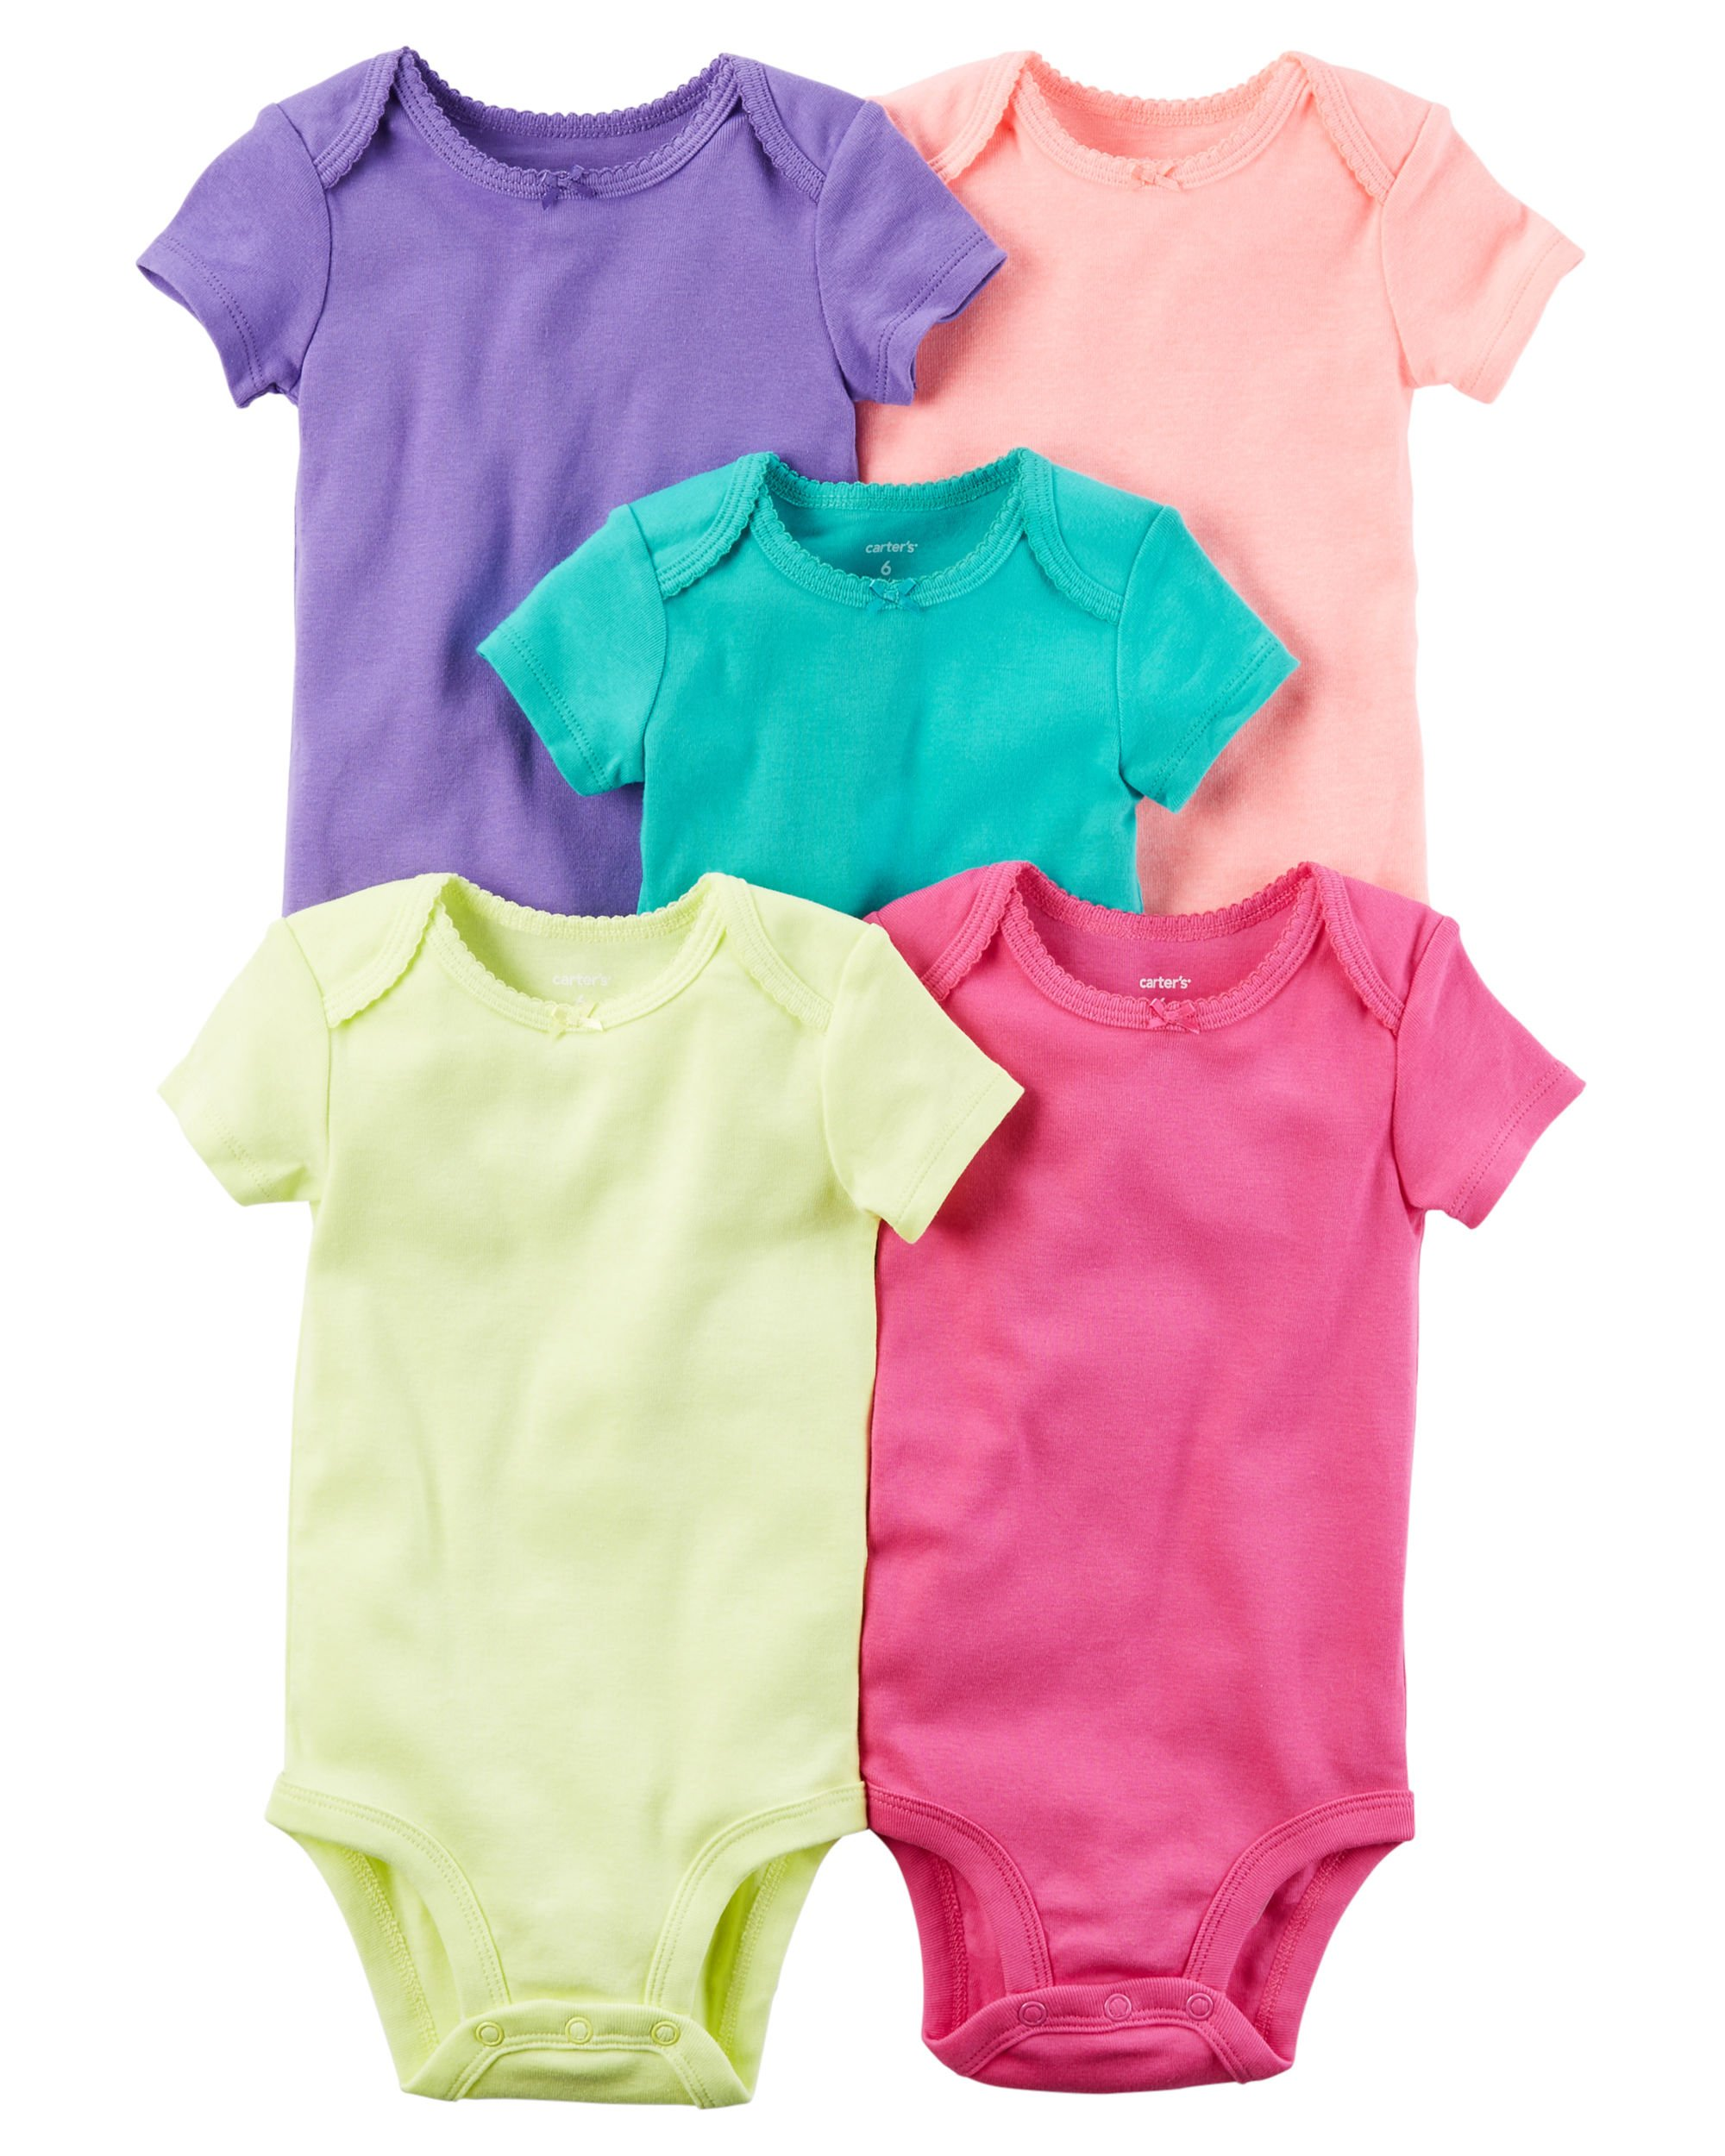 5918e30bf Amazon.com  Carter s Baby Girls  5-Pack Short-Sleeve Original ...